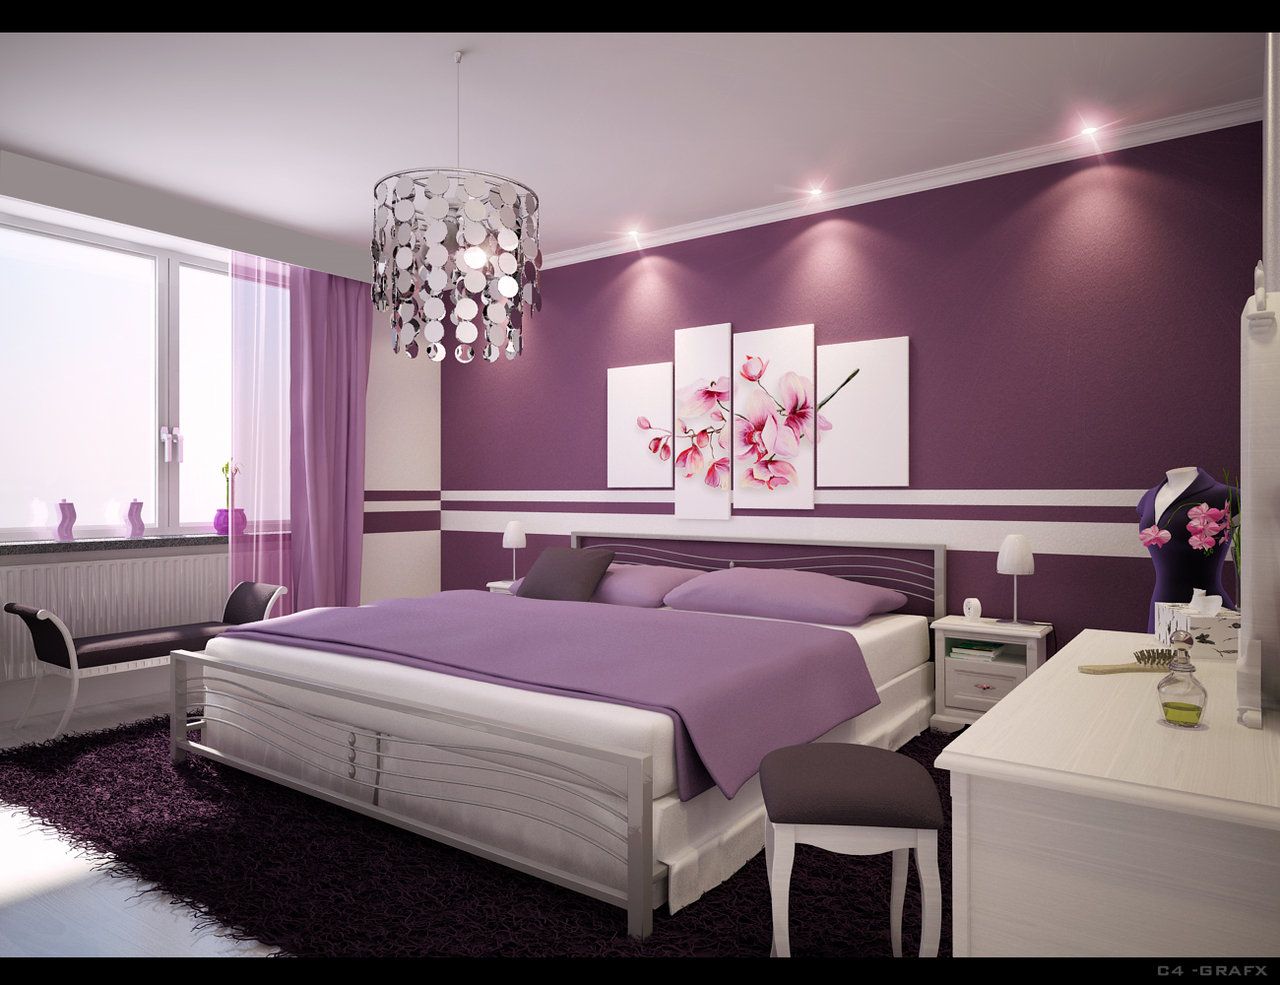 Bedroom Images Decorating Ideas Brilliant With Purple Bedroom Design Ideas Pictures